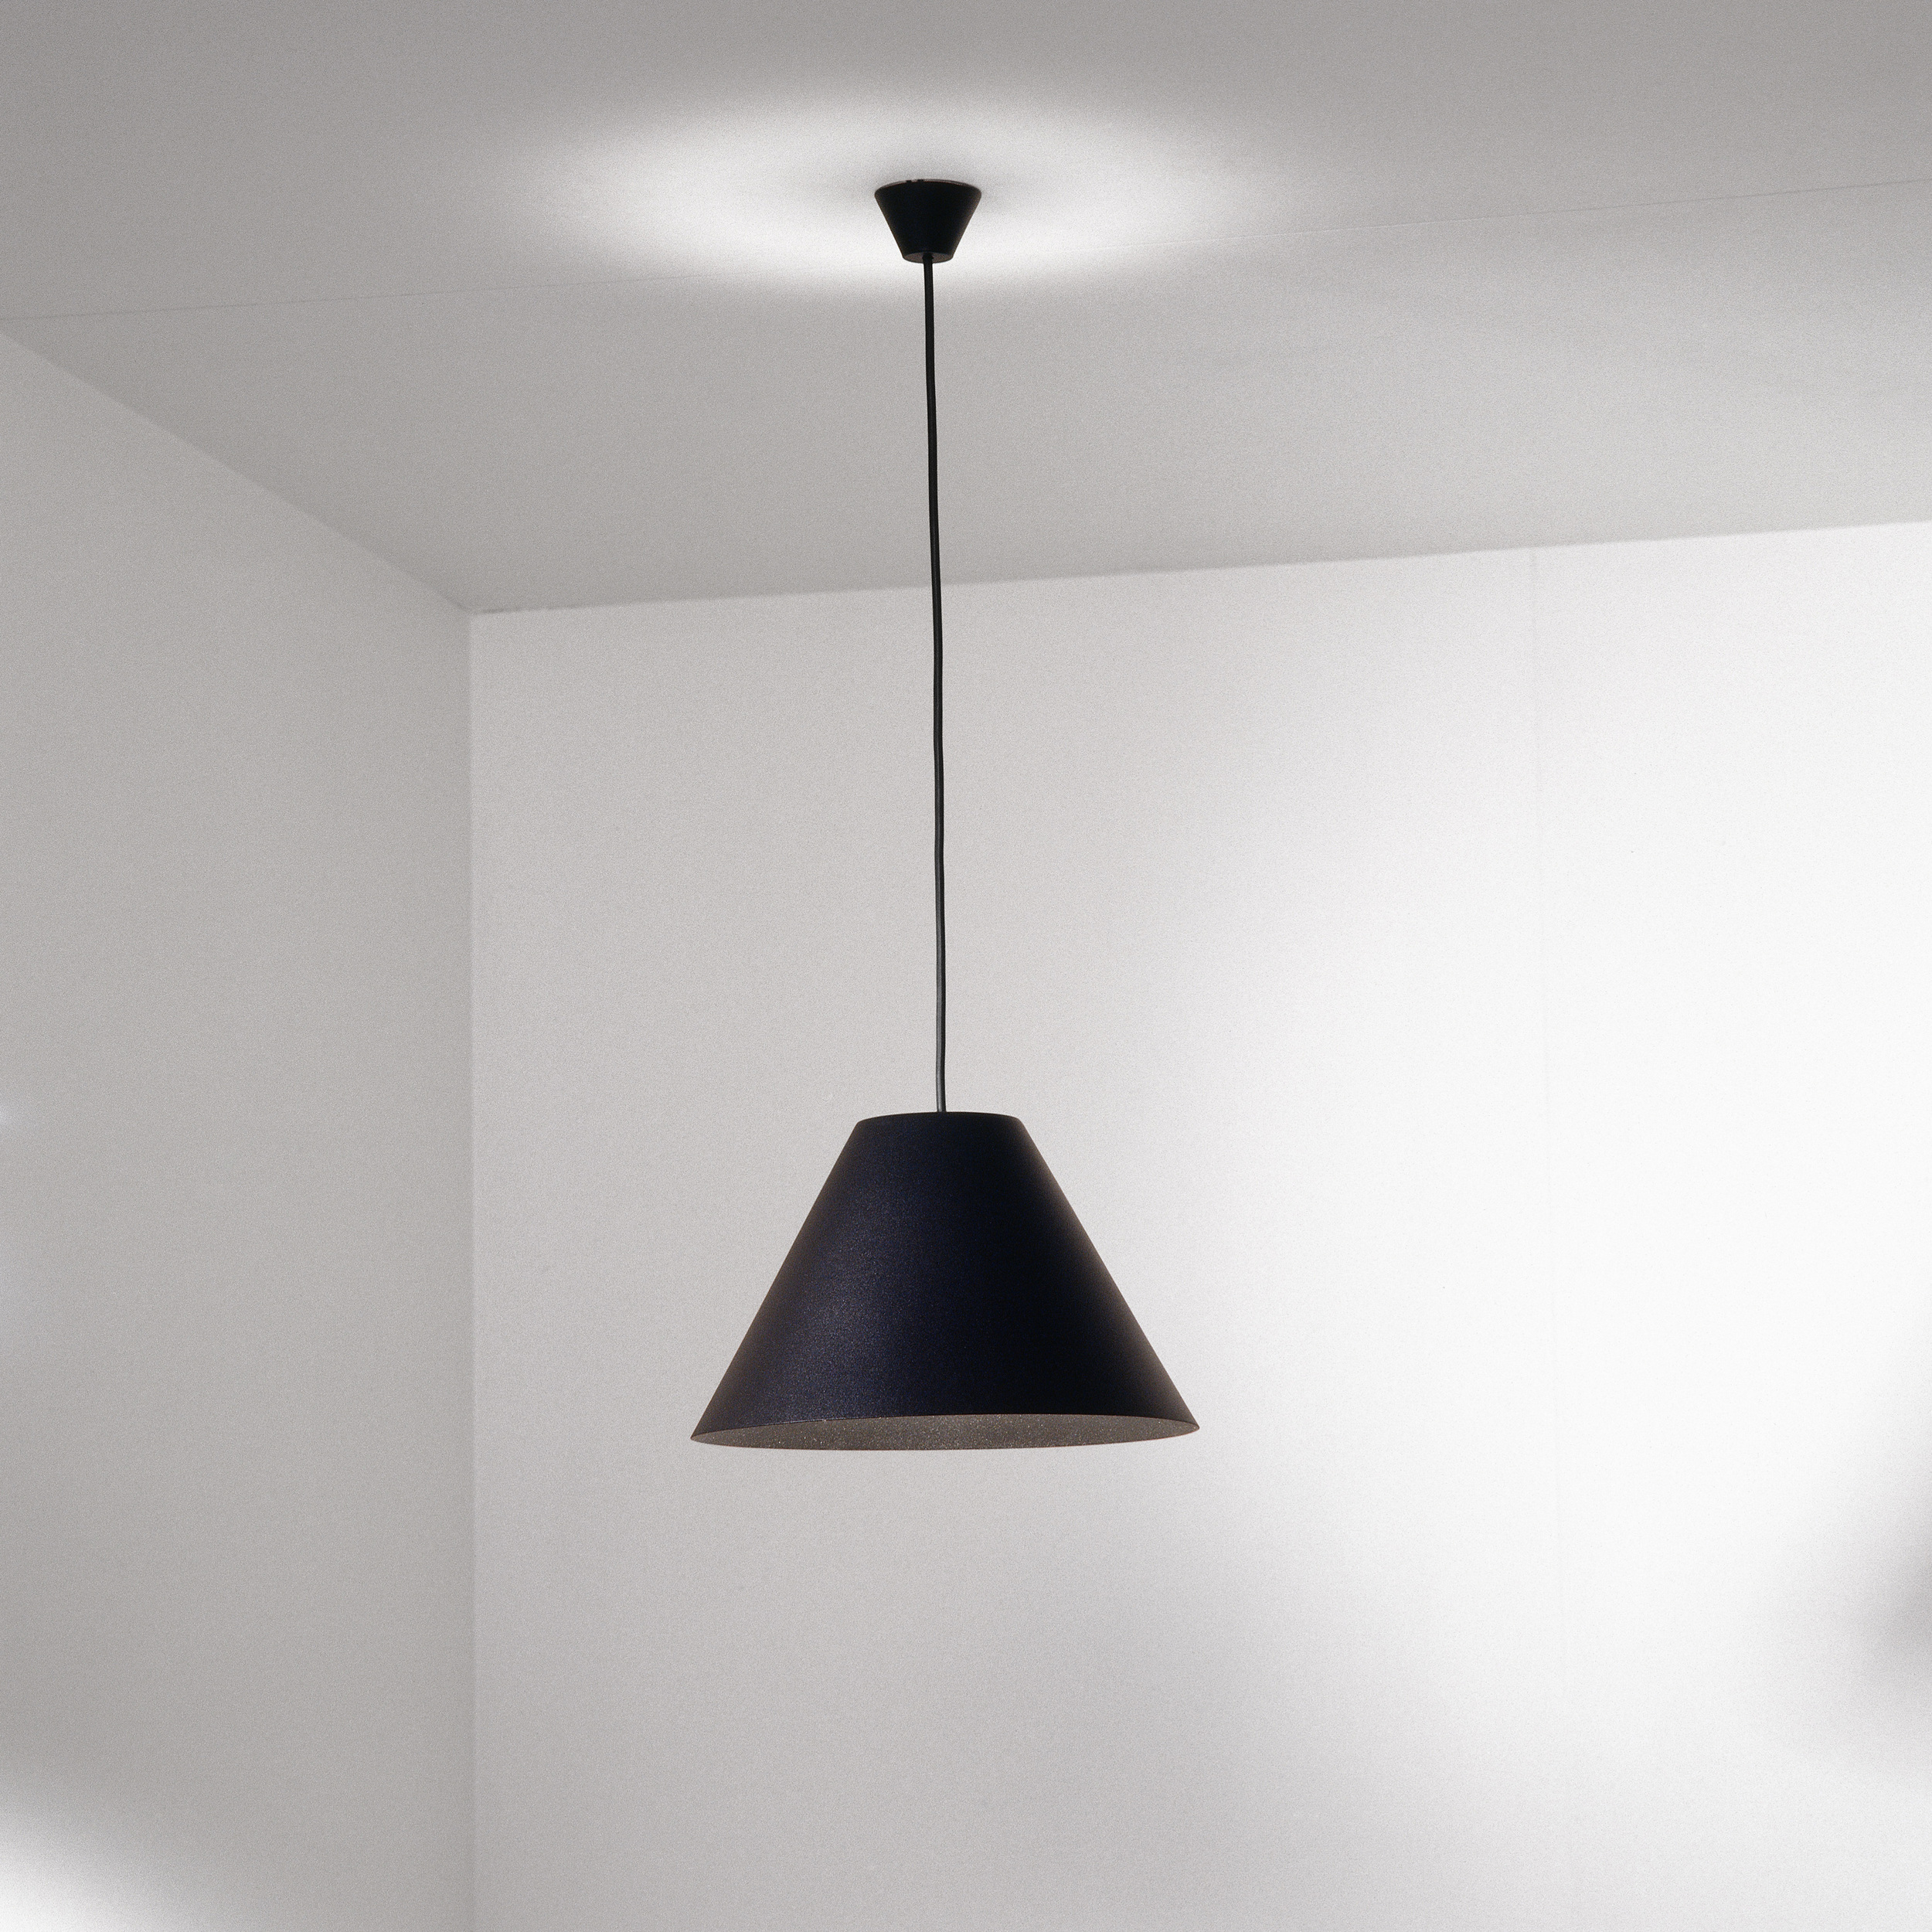 ISM Objects_Shady large black_Pendant copy.jpg